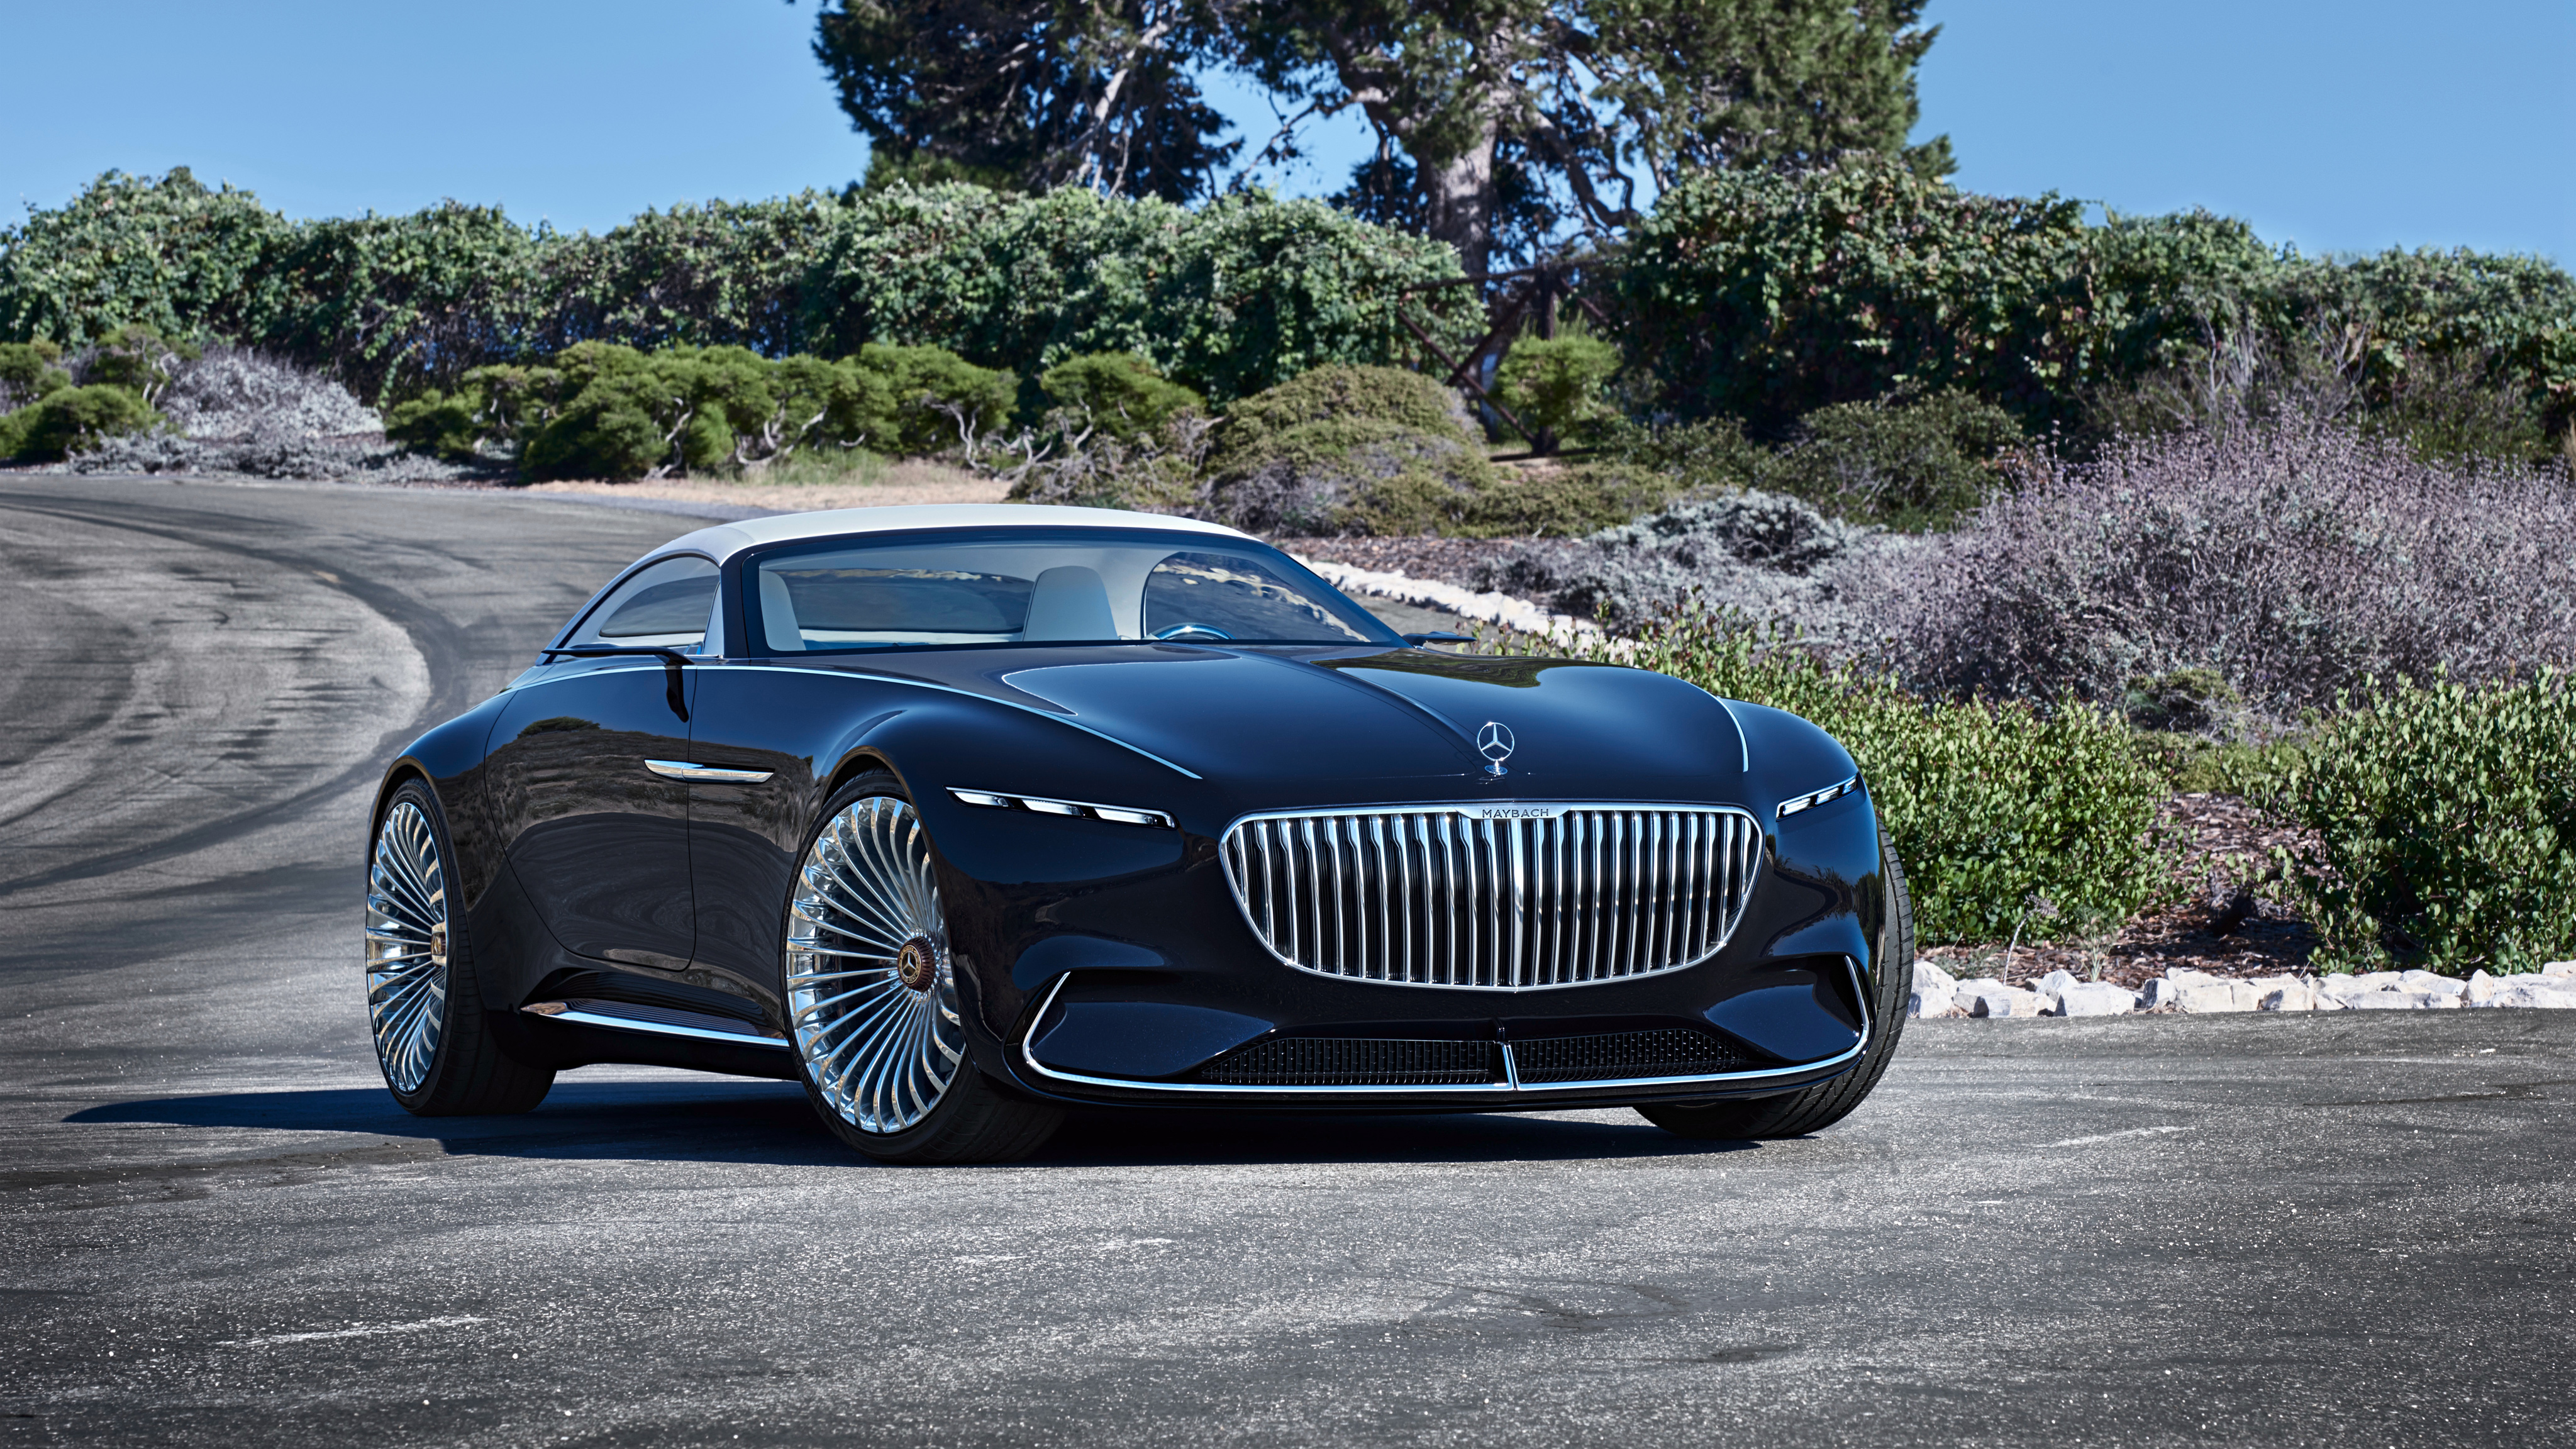 2018 Vision Mercedes Maybach 6 Cabriolet 6 Wallpaper Hd